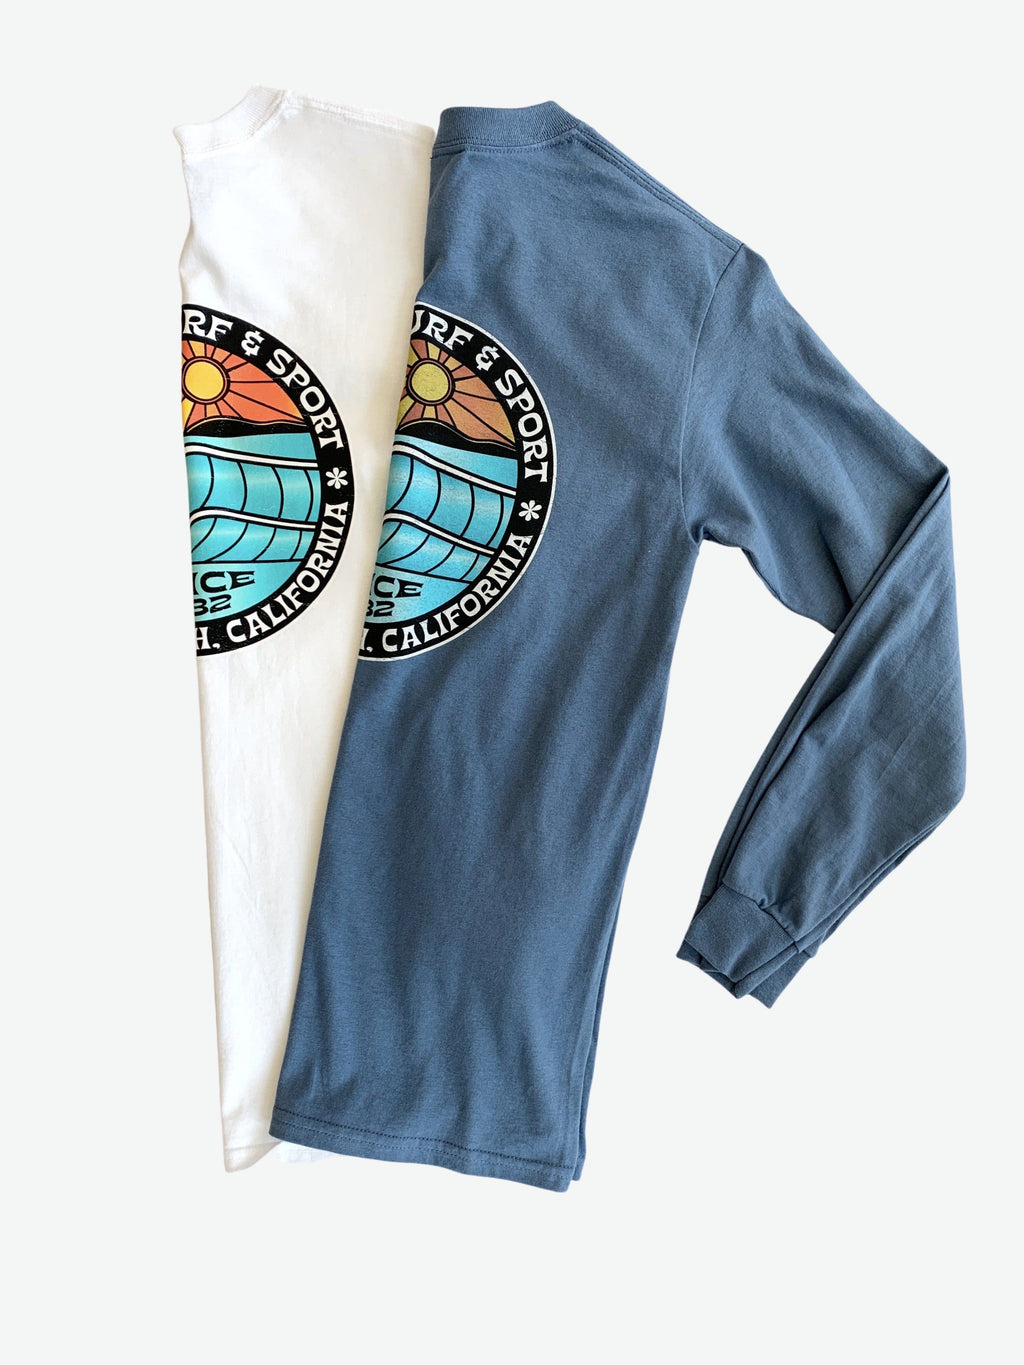 BROOKS STREET  Mens Long Sleeve Tee  (More Colors Available)  - Laguna Surf & Sport